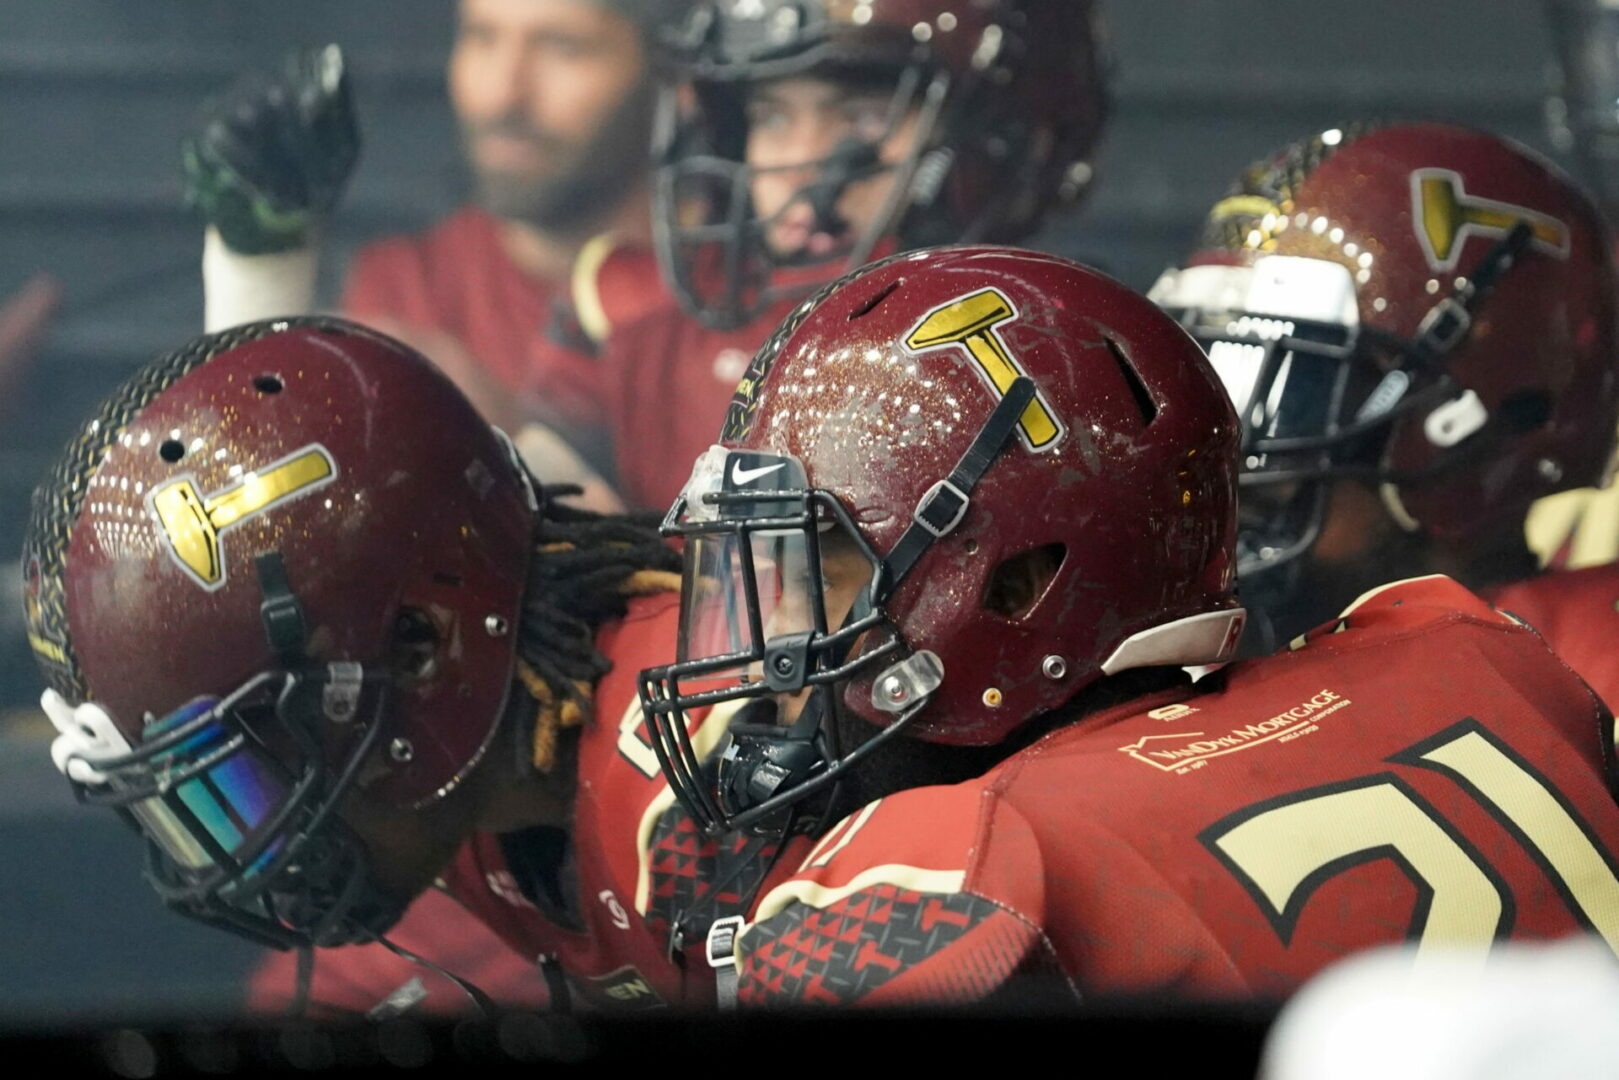 West Michigan Ironmen return to action with an impressive 57-0 thrashing of the Chicago Power in season opener